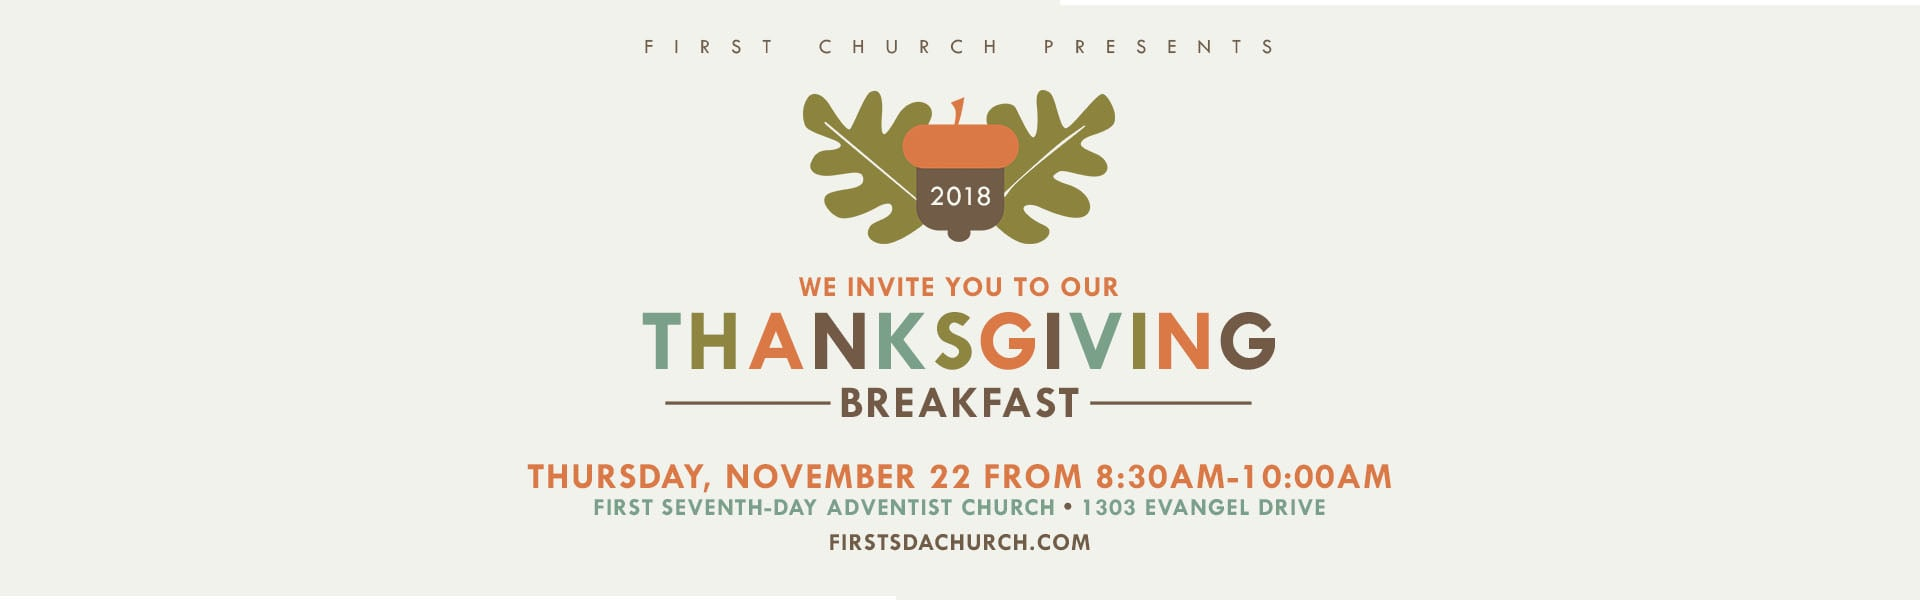 Thanksgiving Breakfast – Web Banner